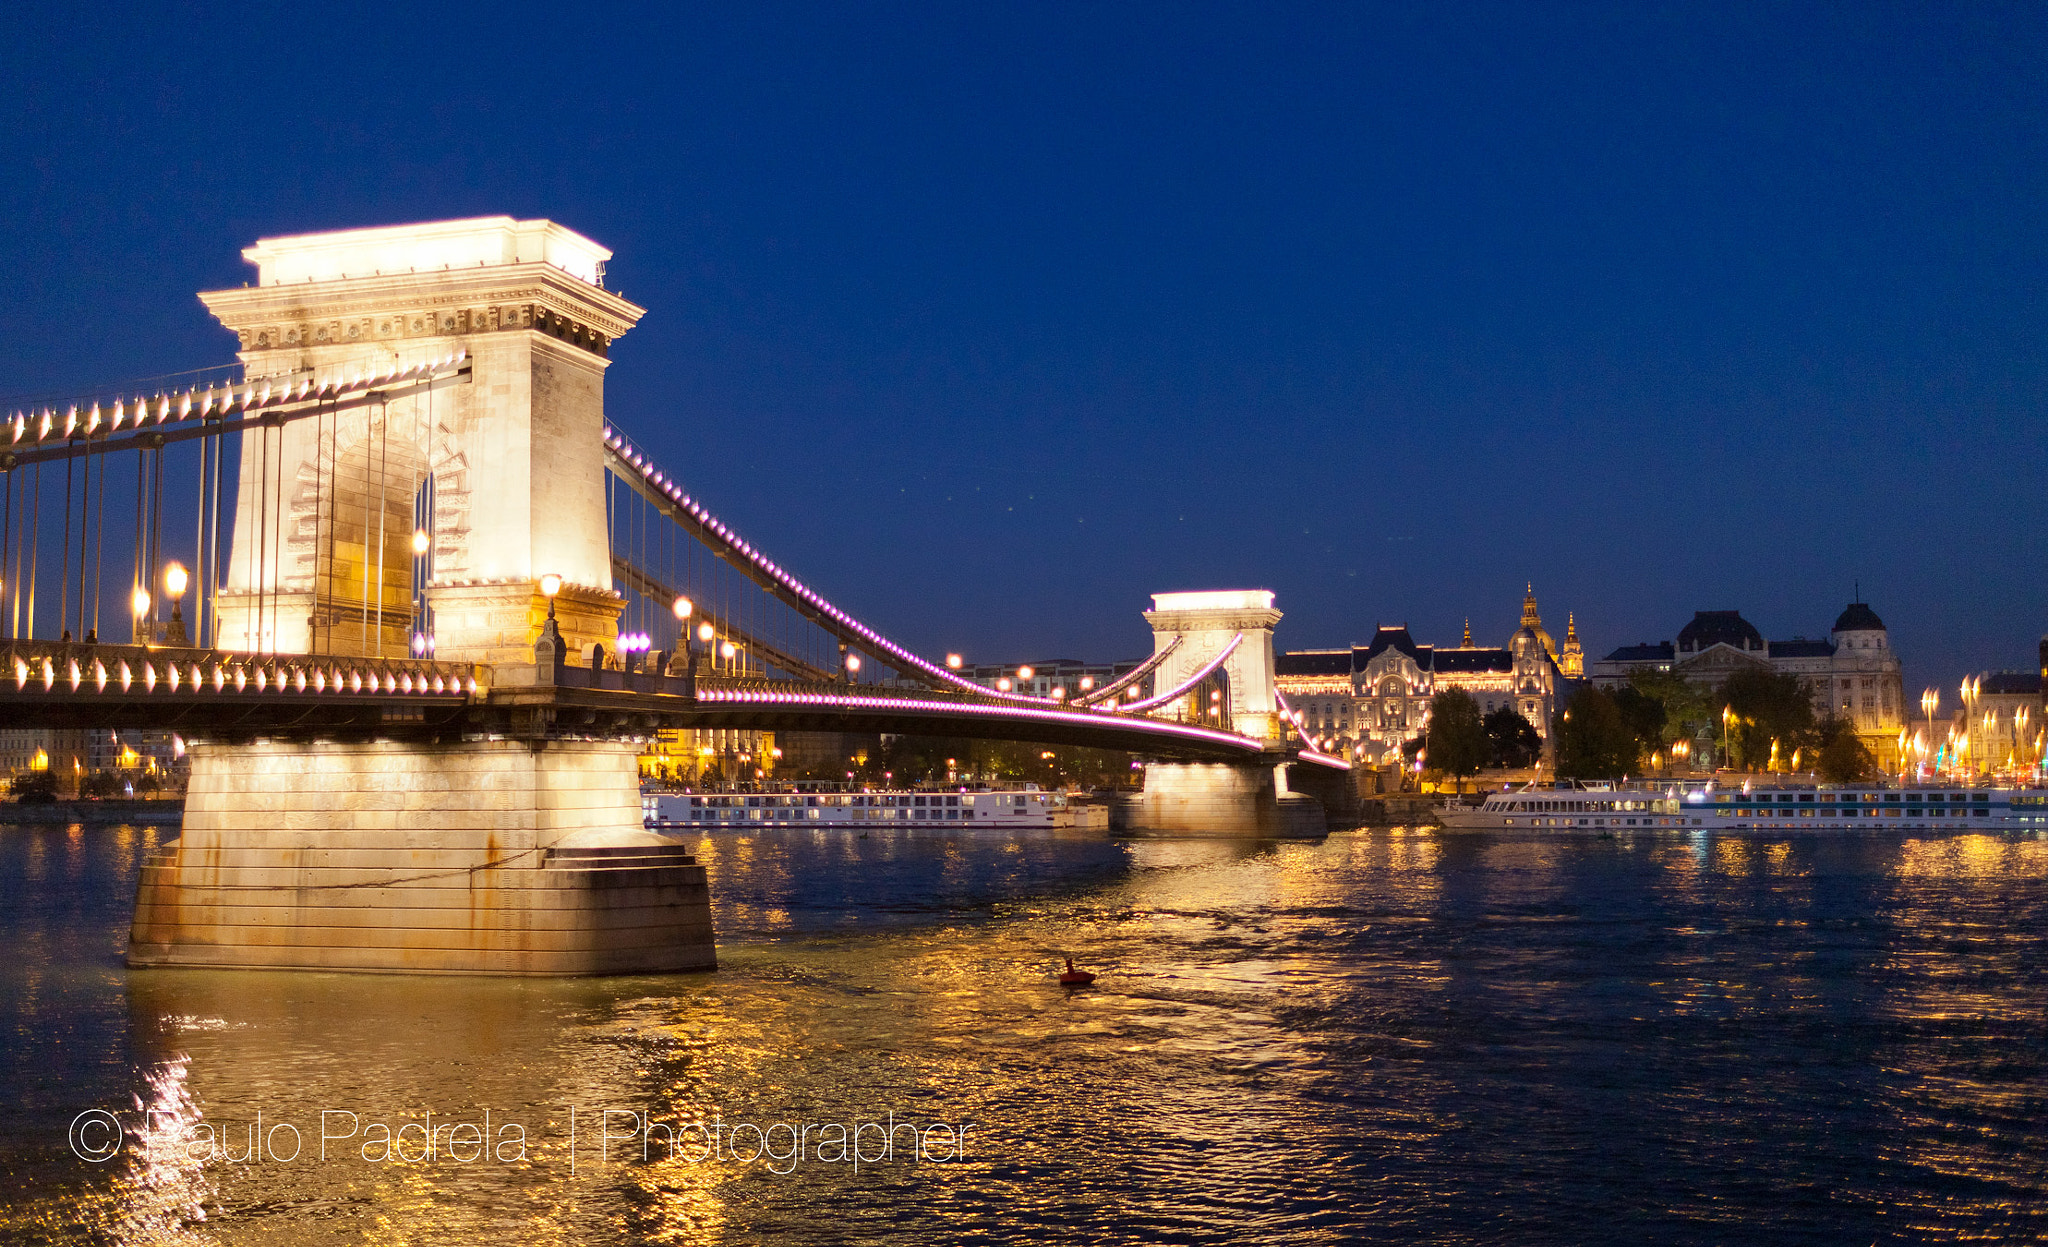 Photograph Budapest By Night by paulopadrelafotografos on 500px